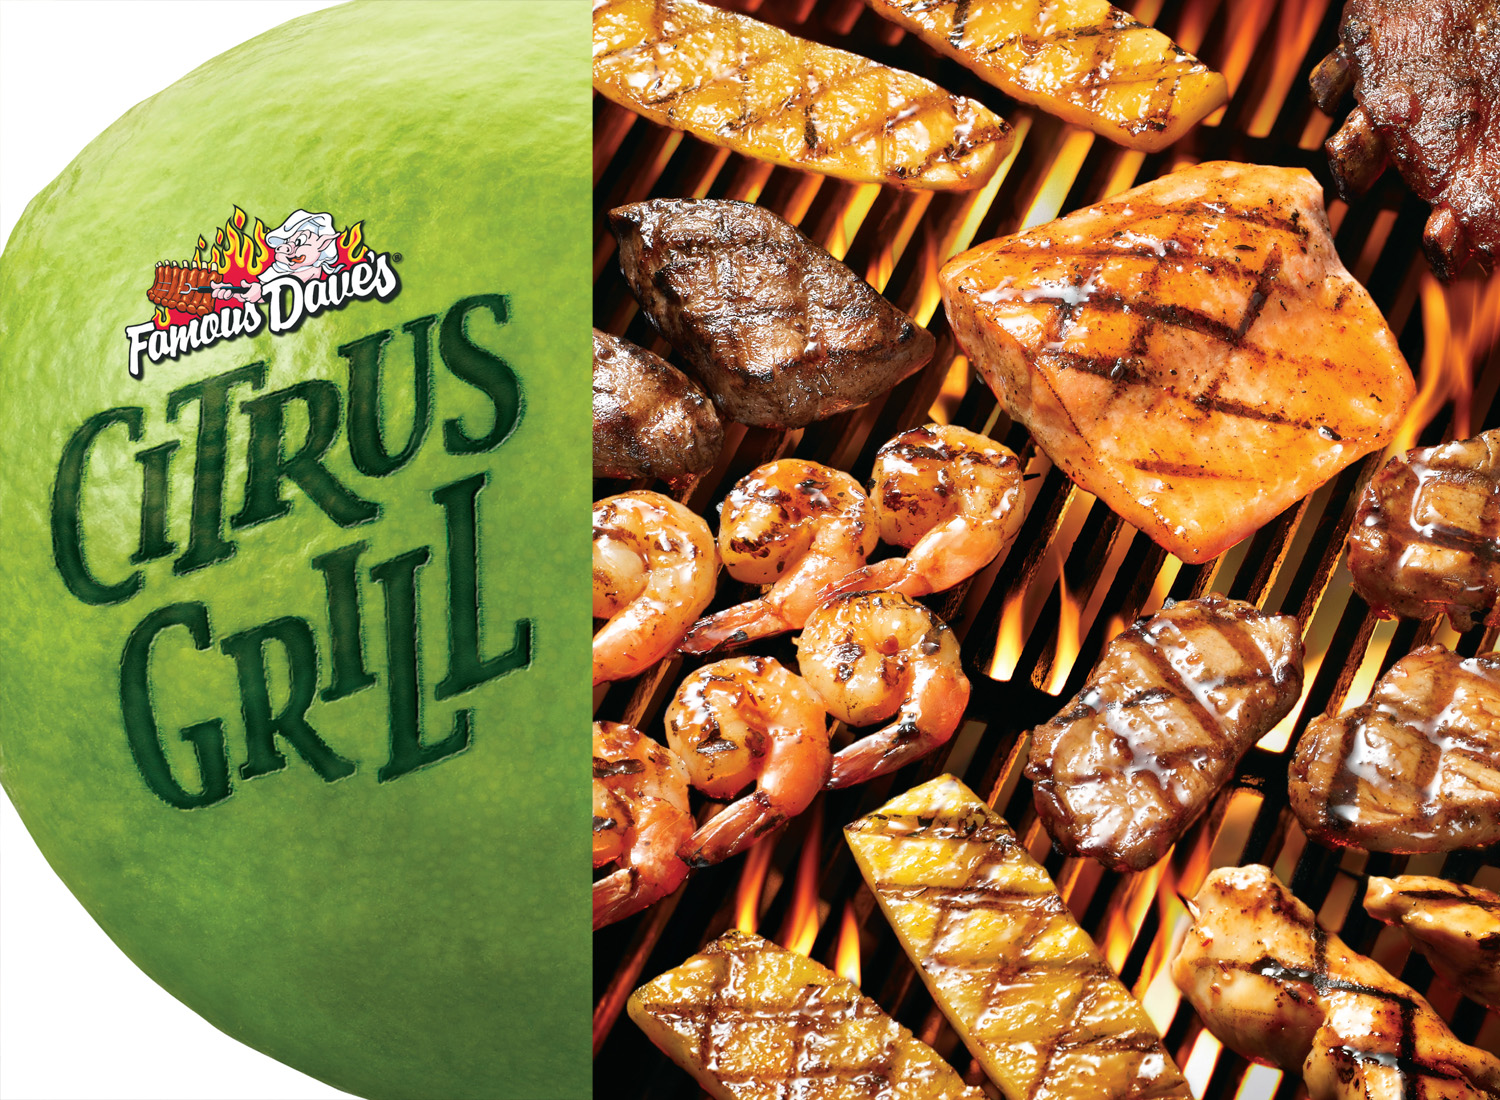 Copy of Famous Dave's Citrus Grill | Tony Kubat Photography